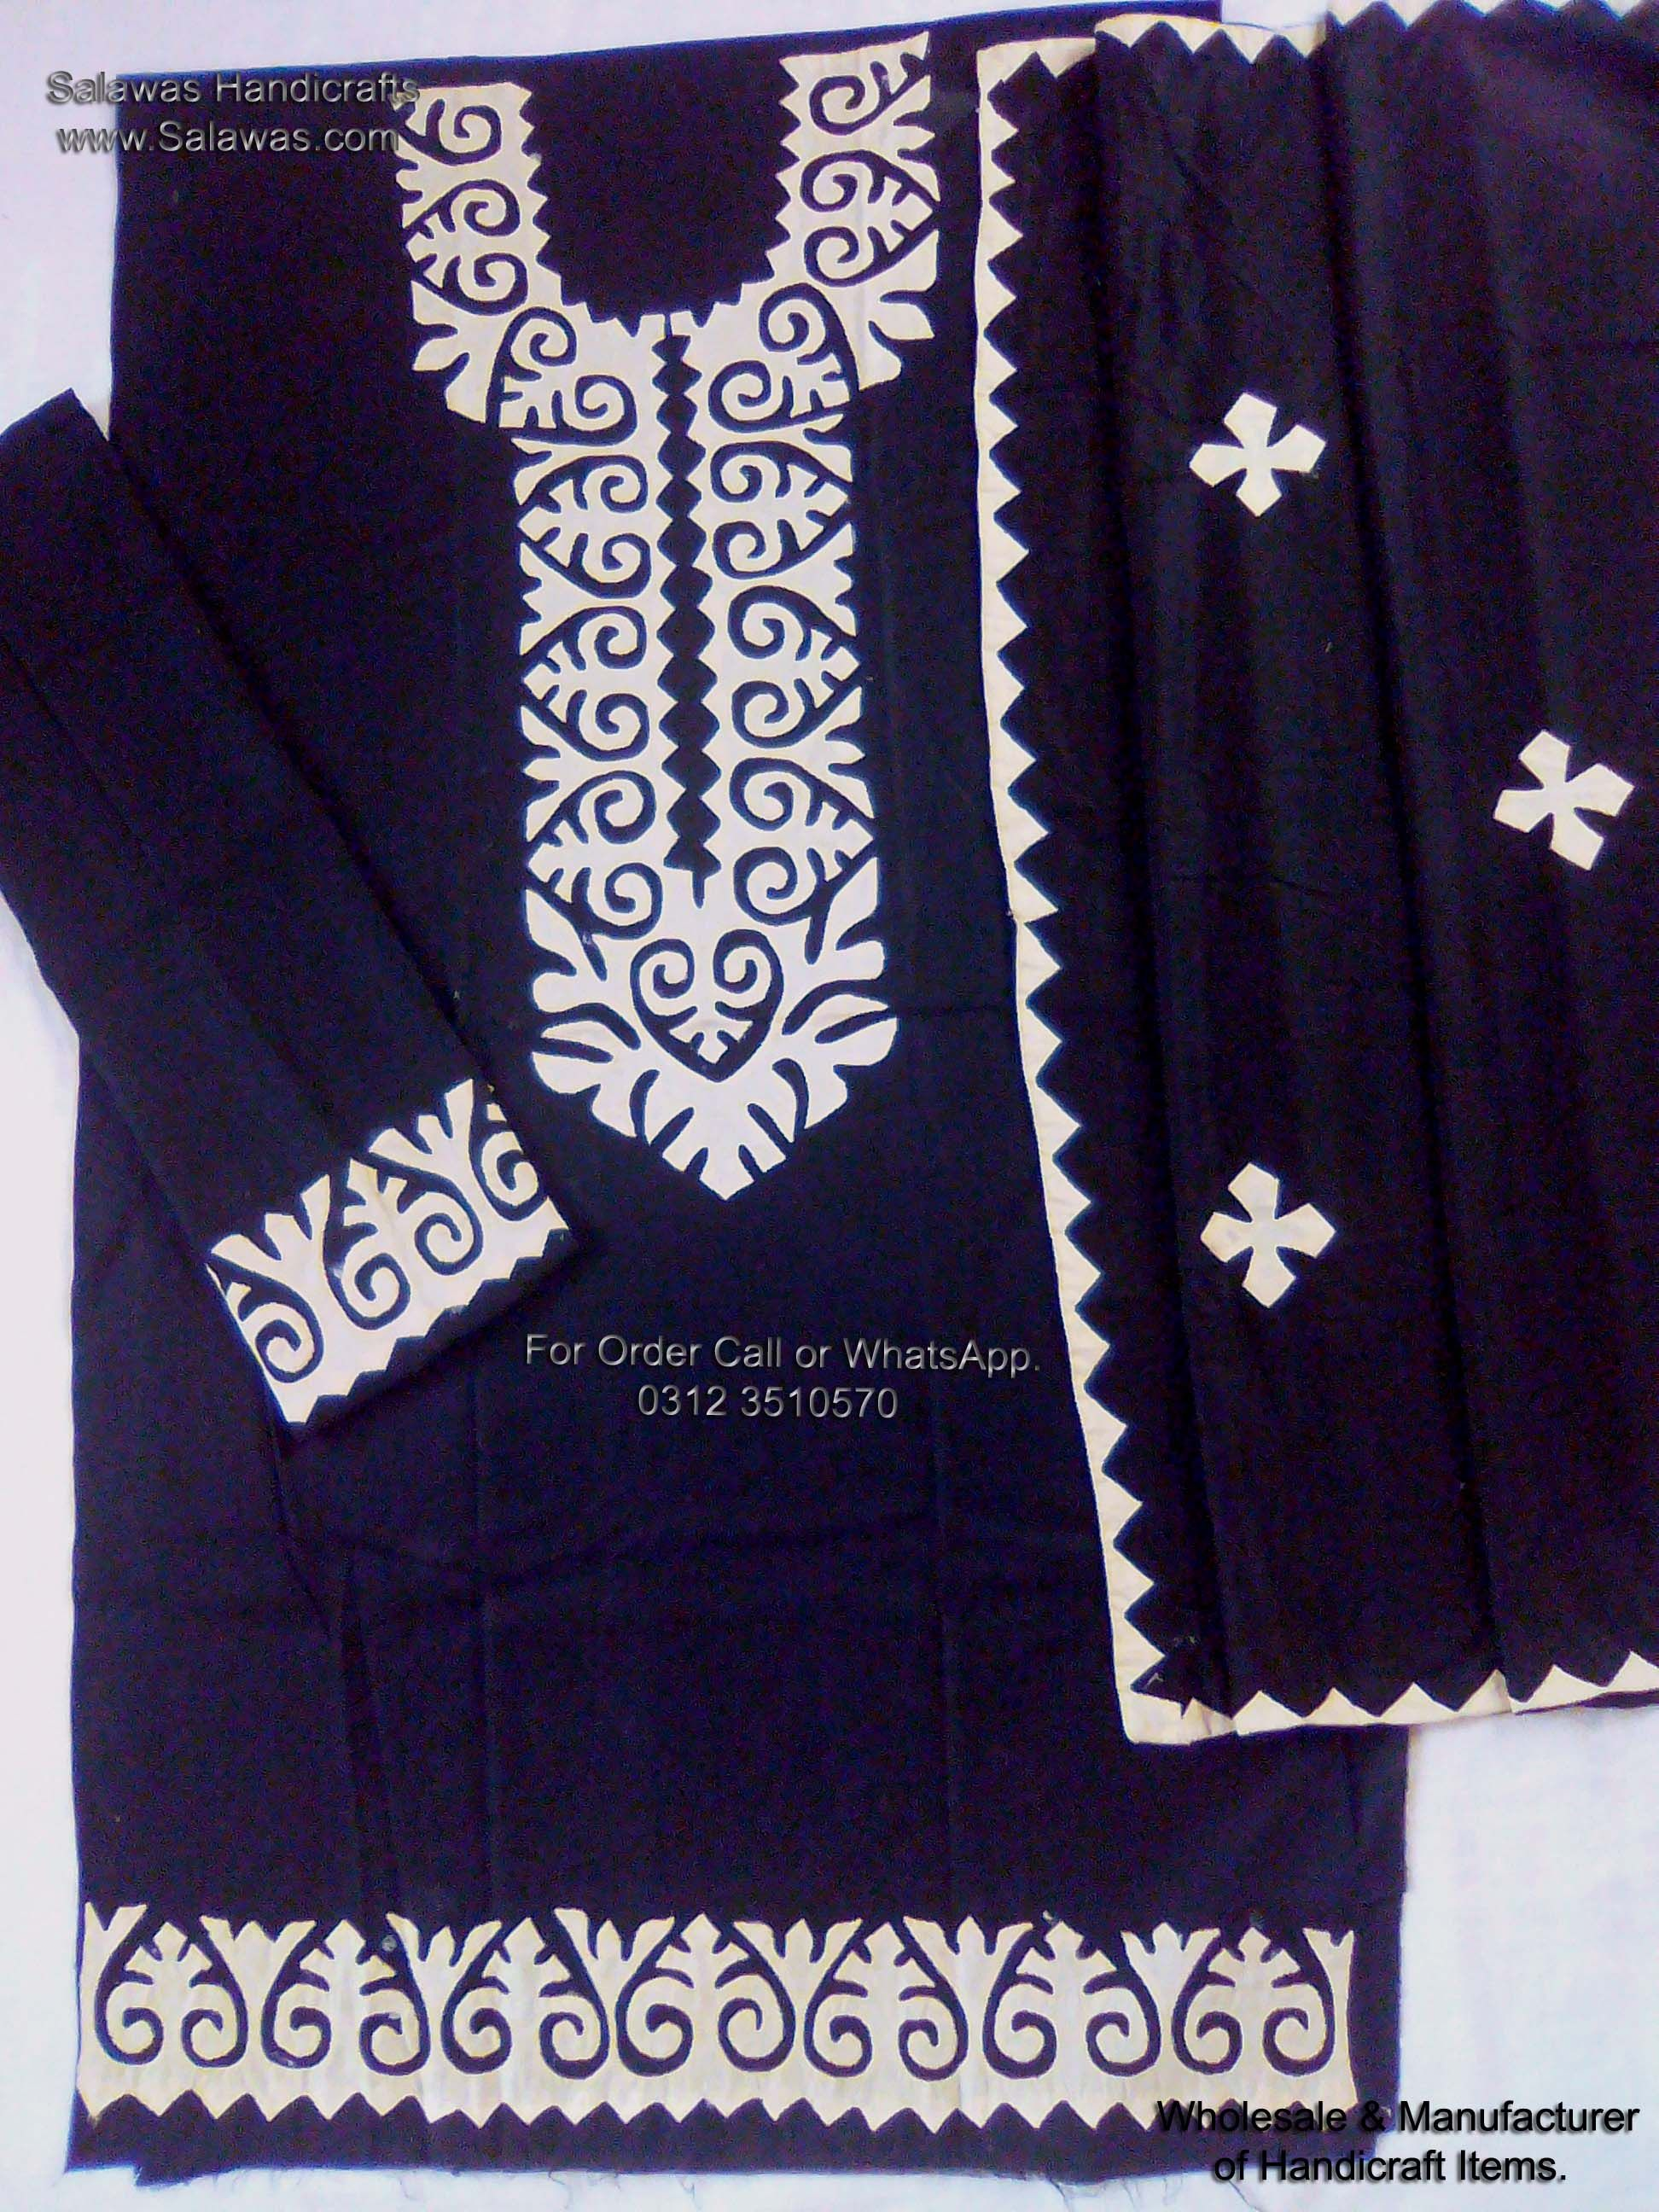 The best indian aplic design of hand embroidery and applique work